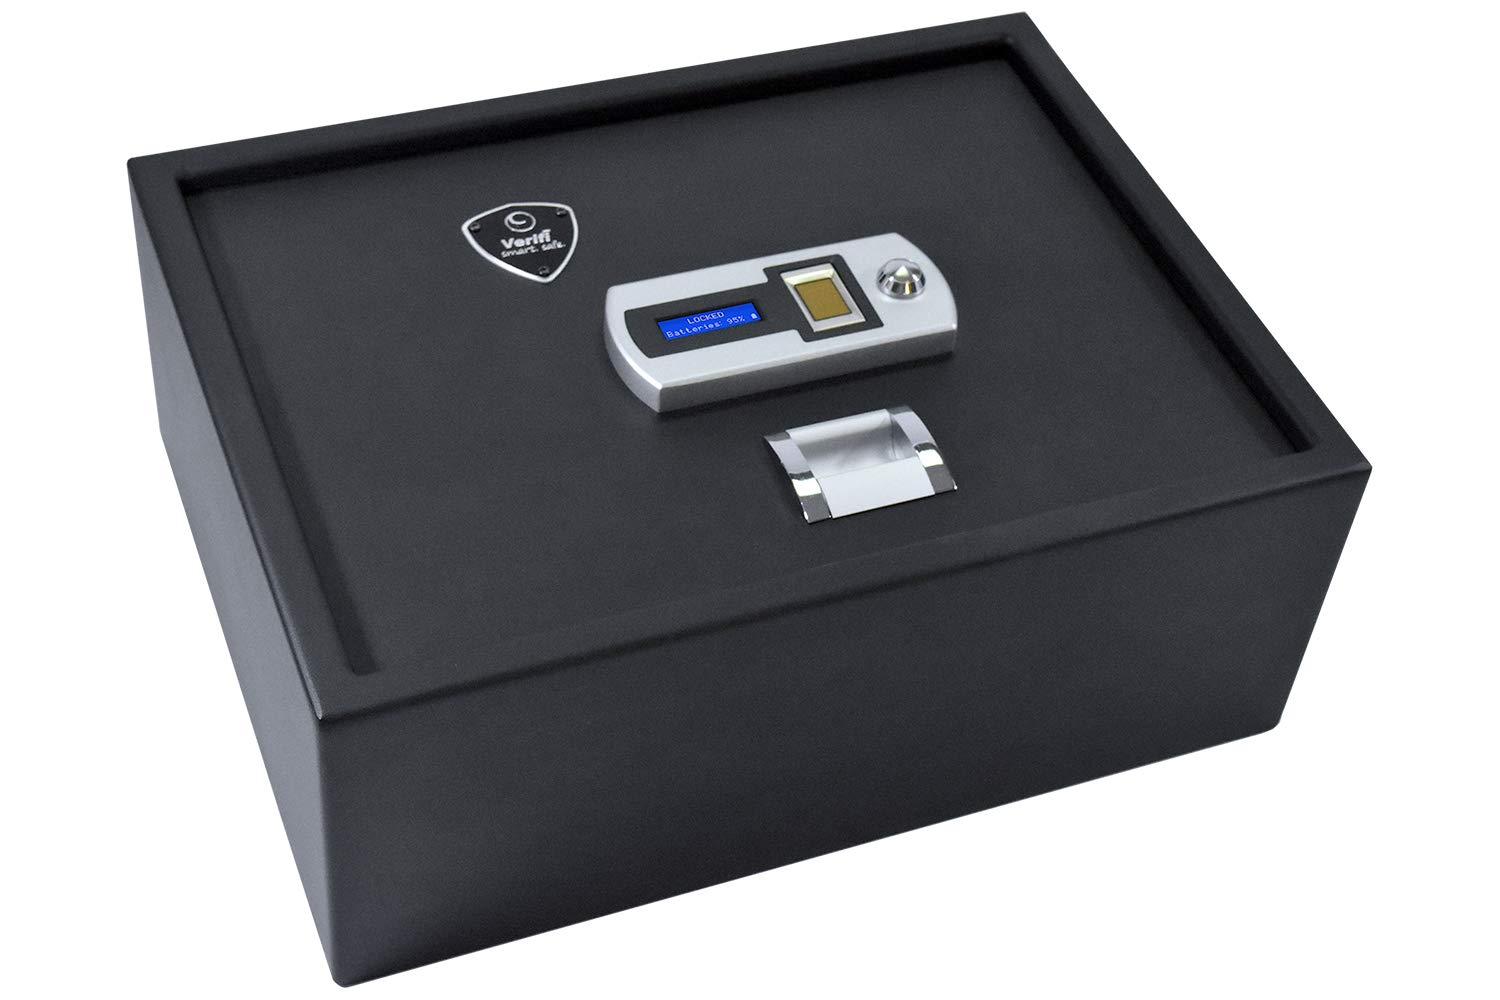 Top 10 Best Fingerprint Safes